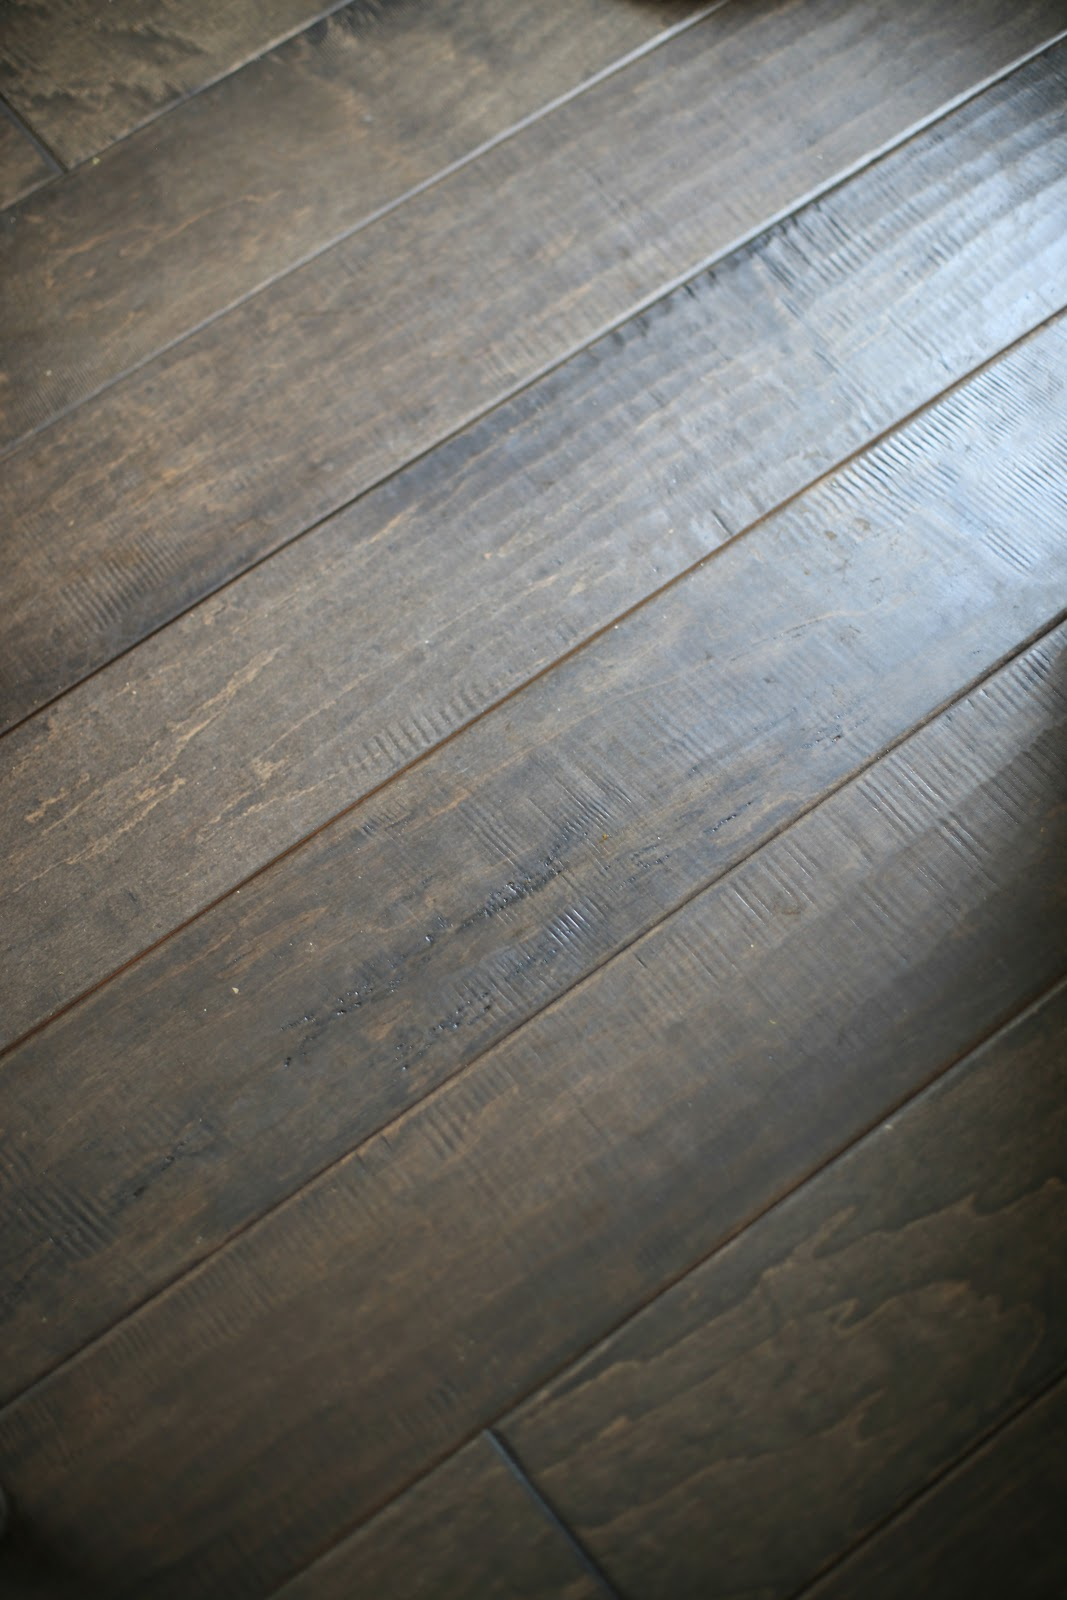 Hardwood flooring q a french country cottage for Country cottage floor tiles